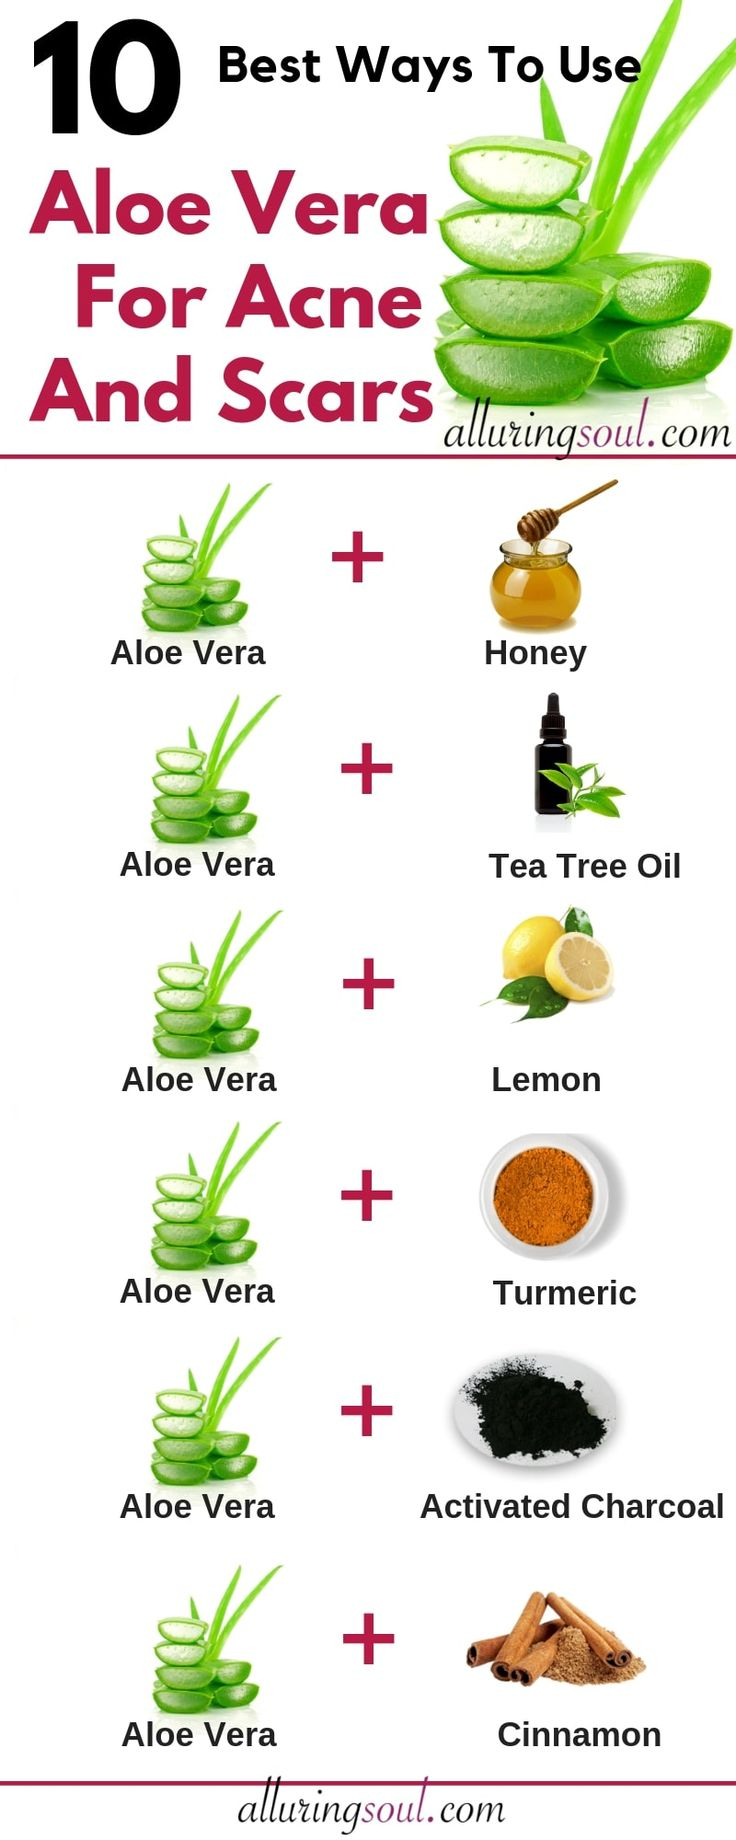 Aloe Vera For Acne – 10 Ways To Treat Acne And Scars